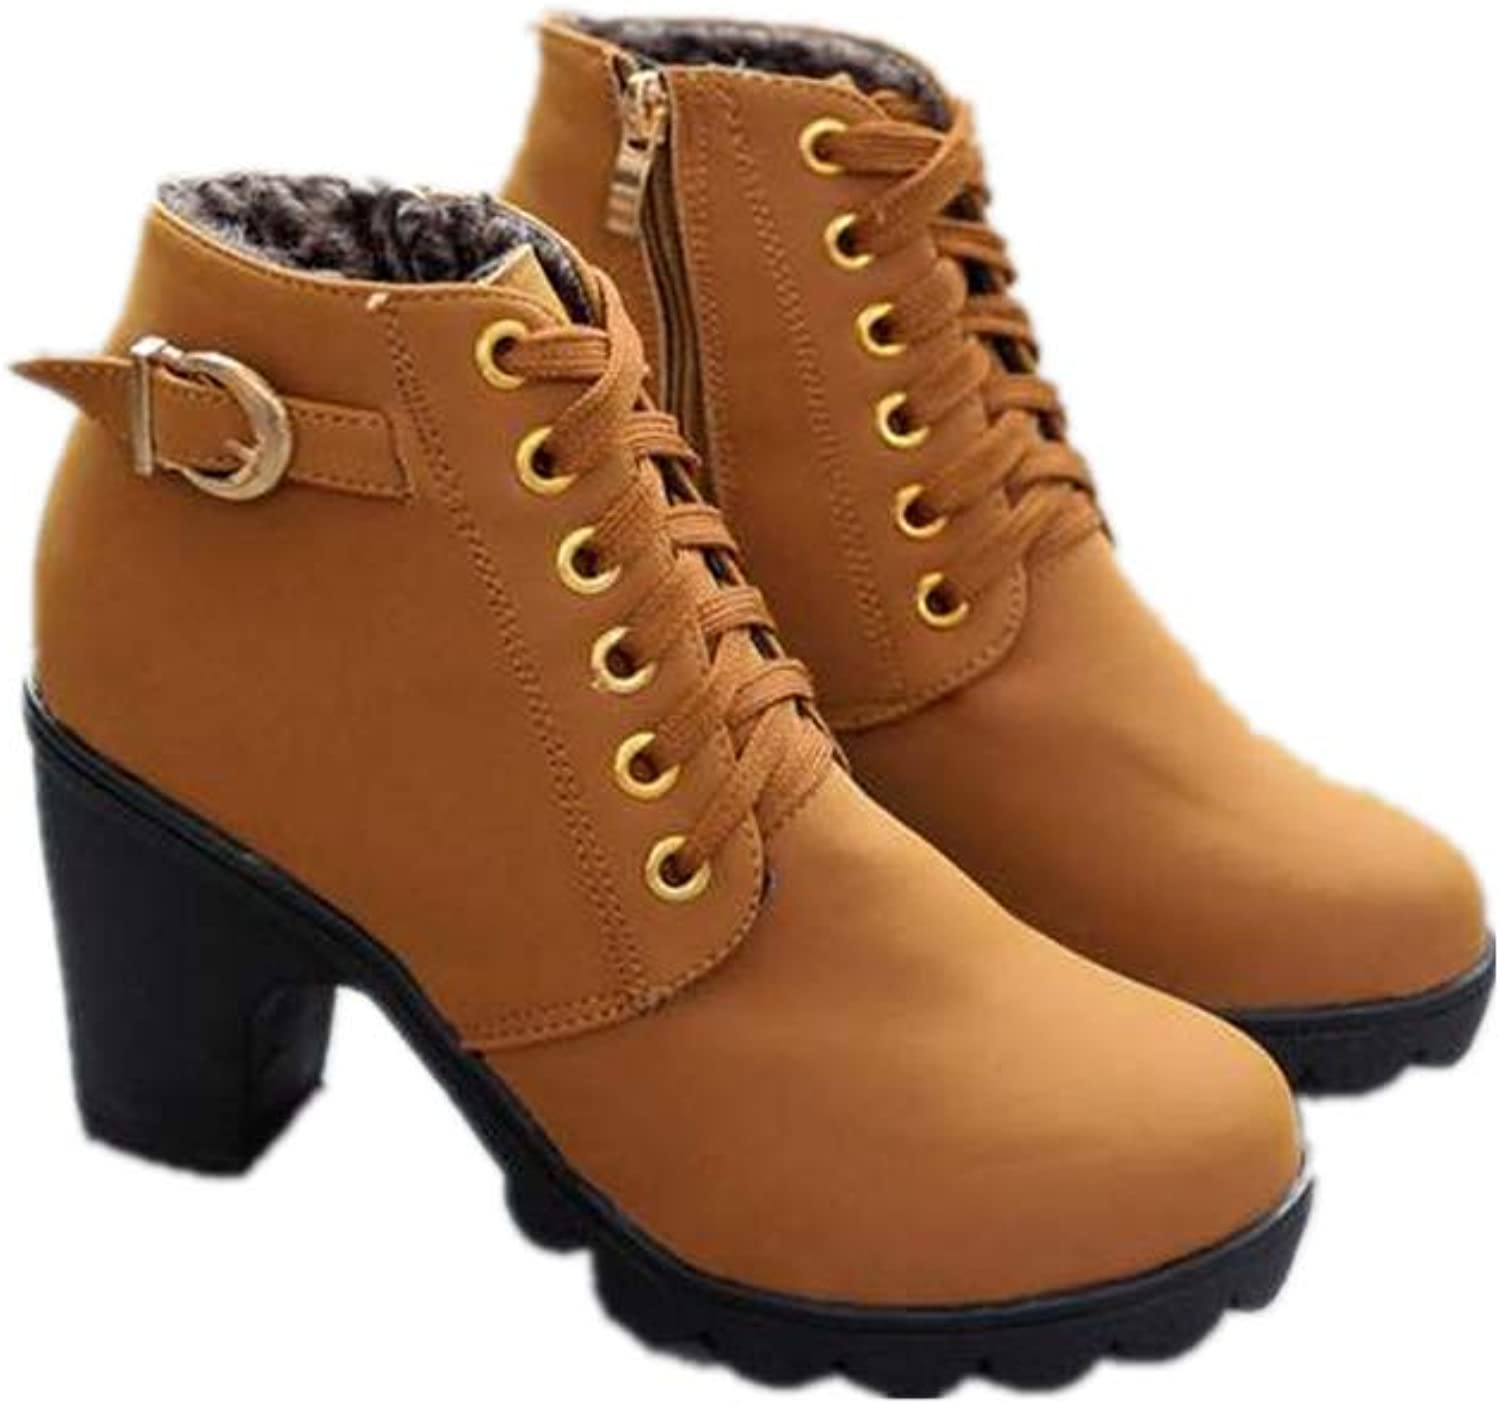 F1rst Rate Ankle Boots Women, Ladies Winter Dress Boots Zipper High Heels Booties shoes